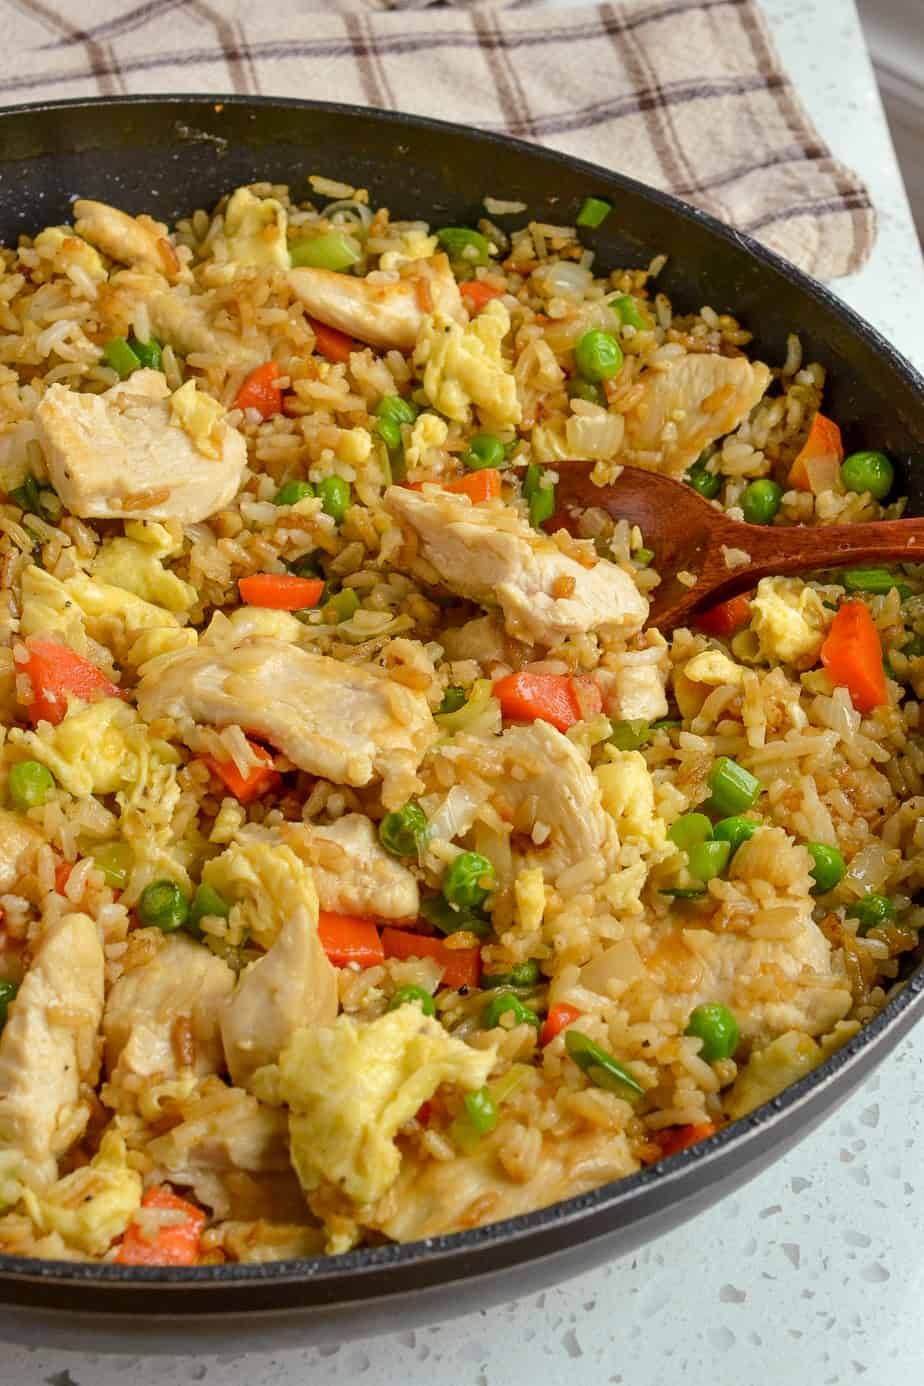 Eggs, chicken, peas, carrots, and green onions in fried rice.